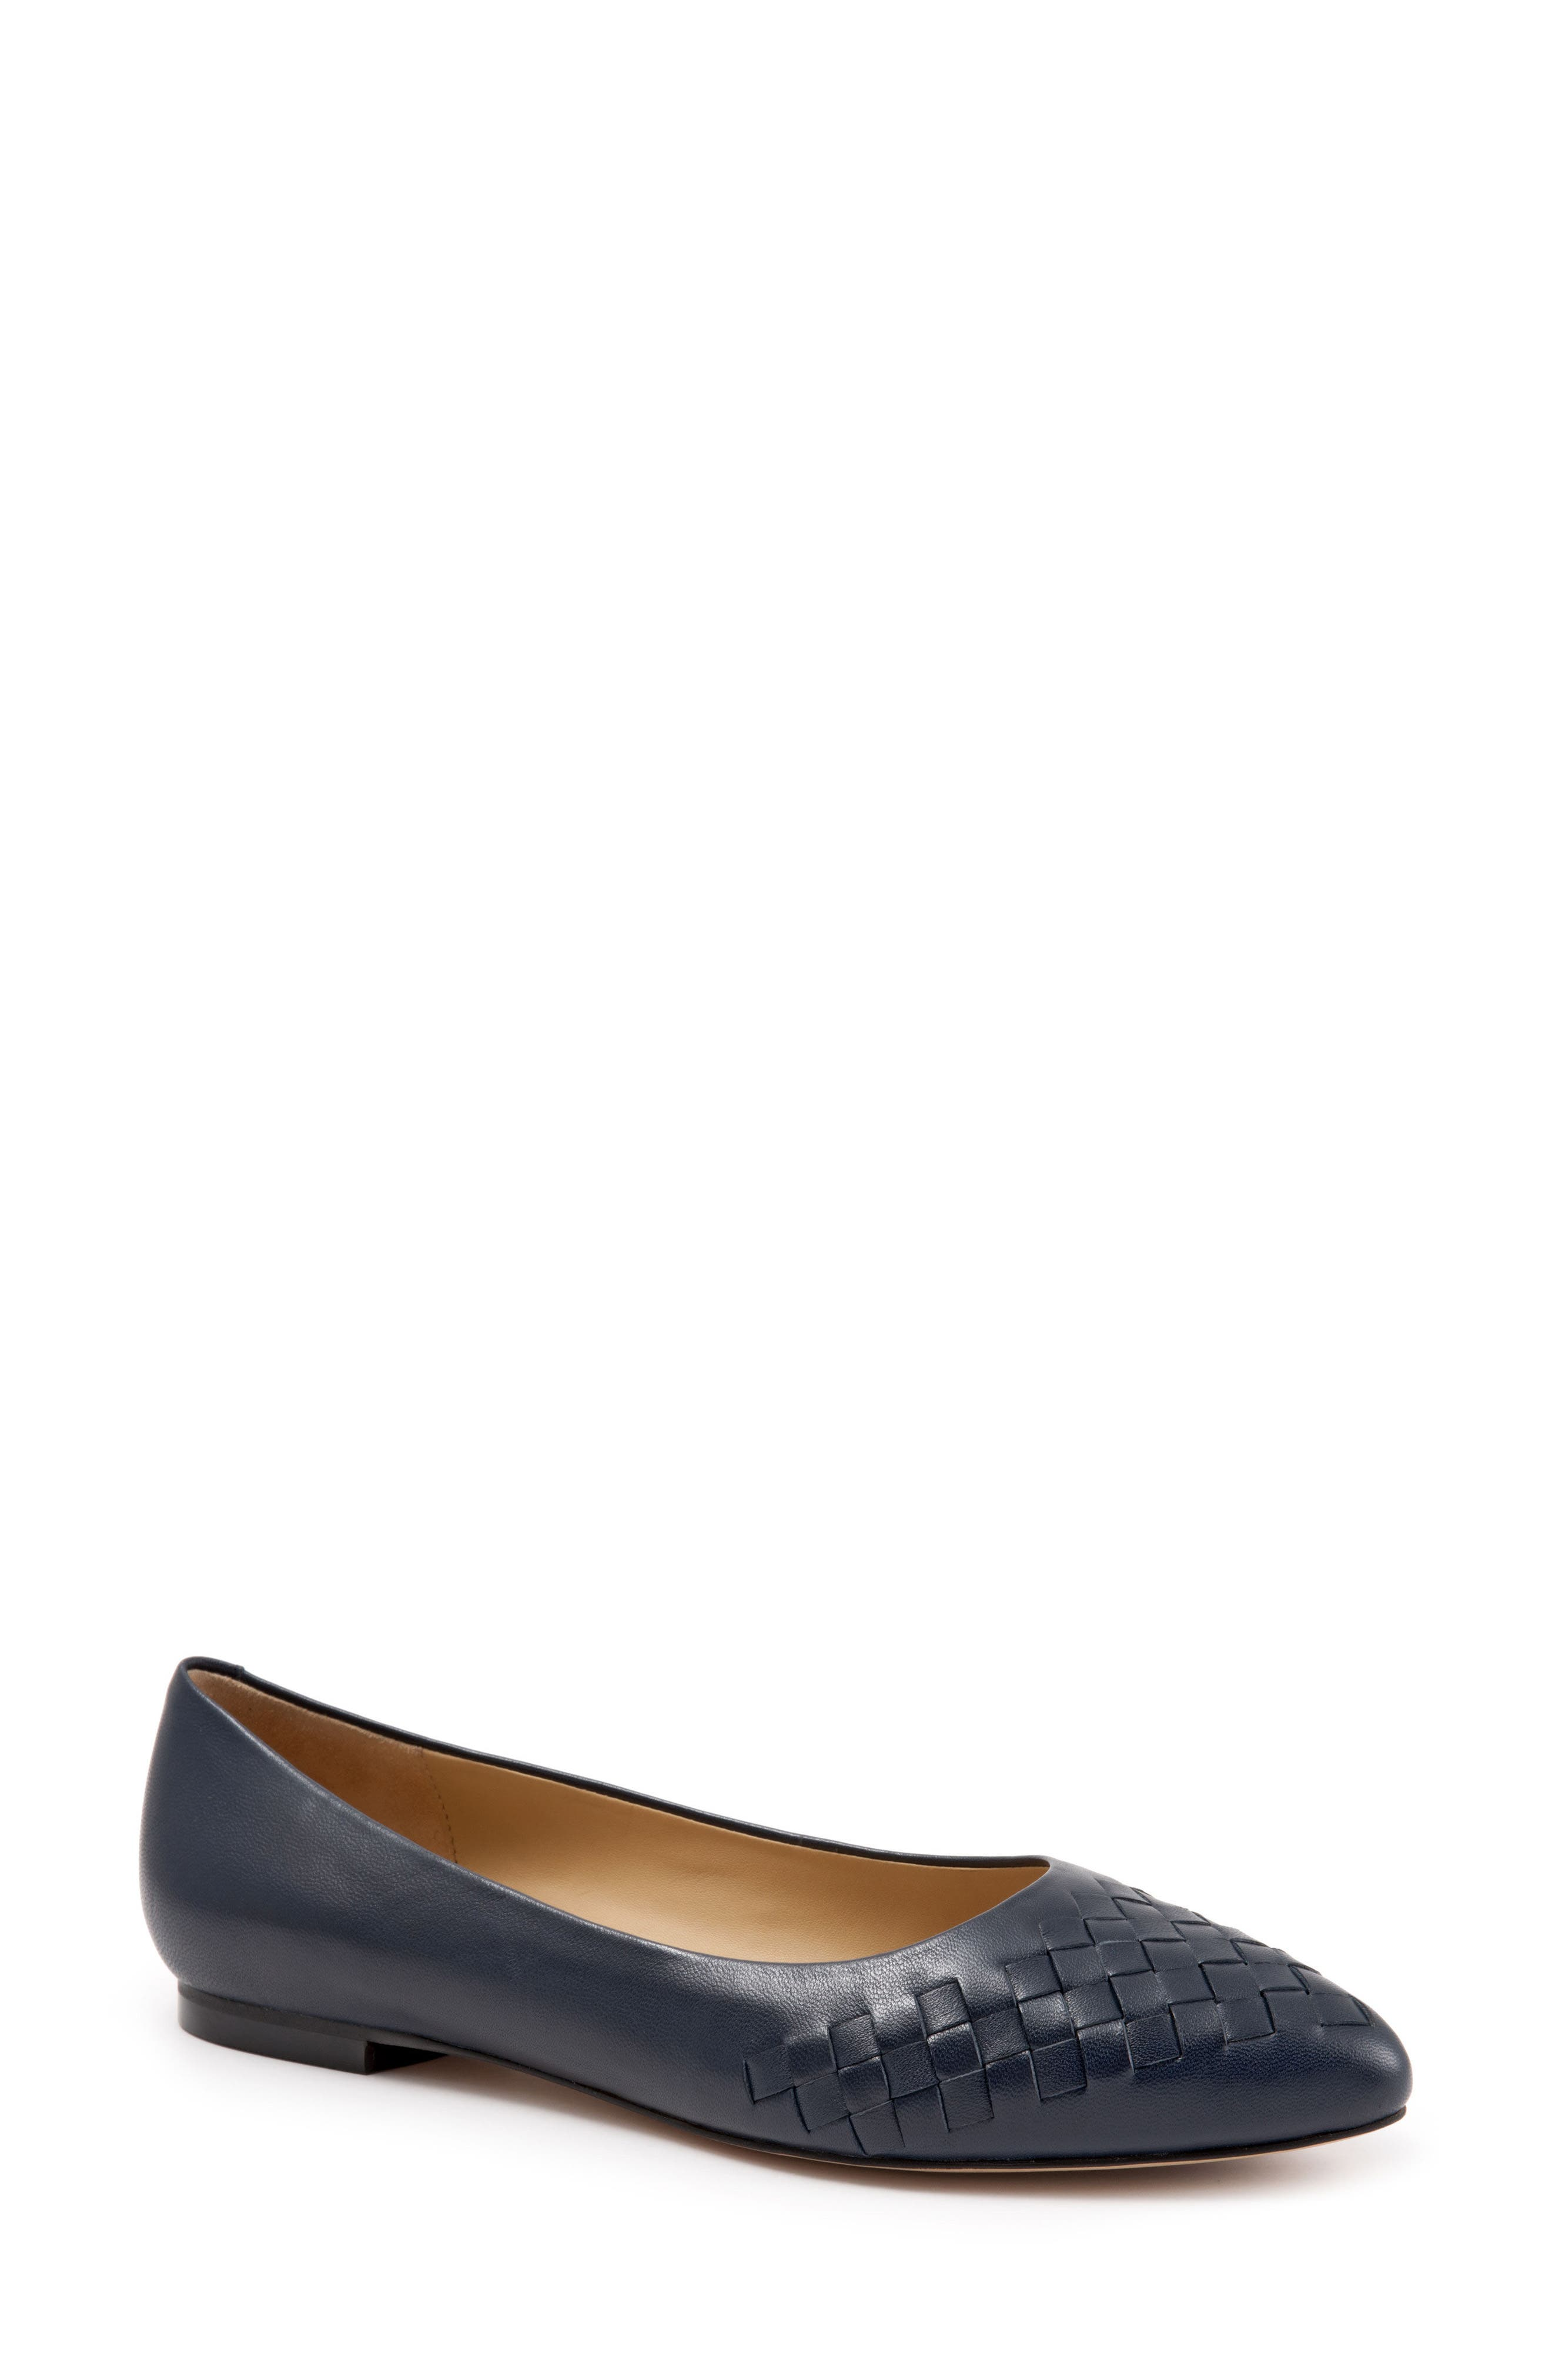 Trotters Estee Pointed Toe Flat, Blue